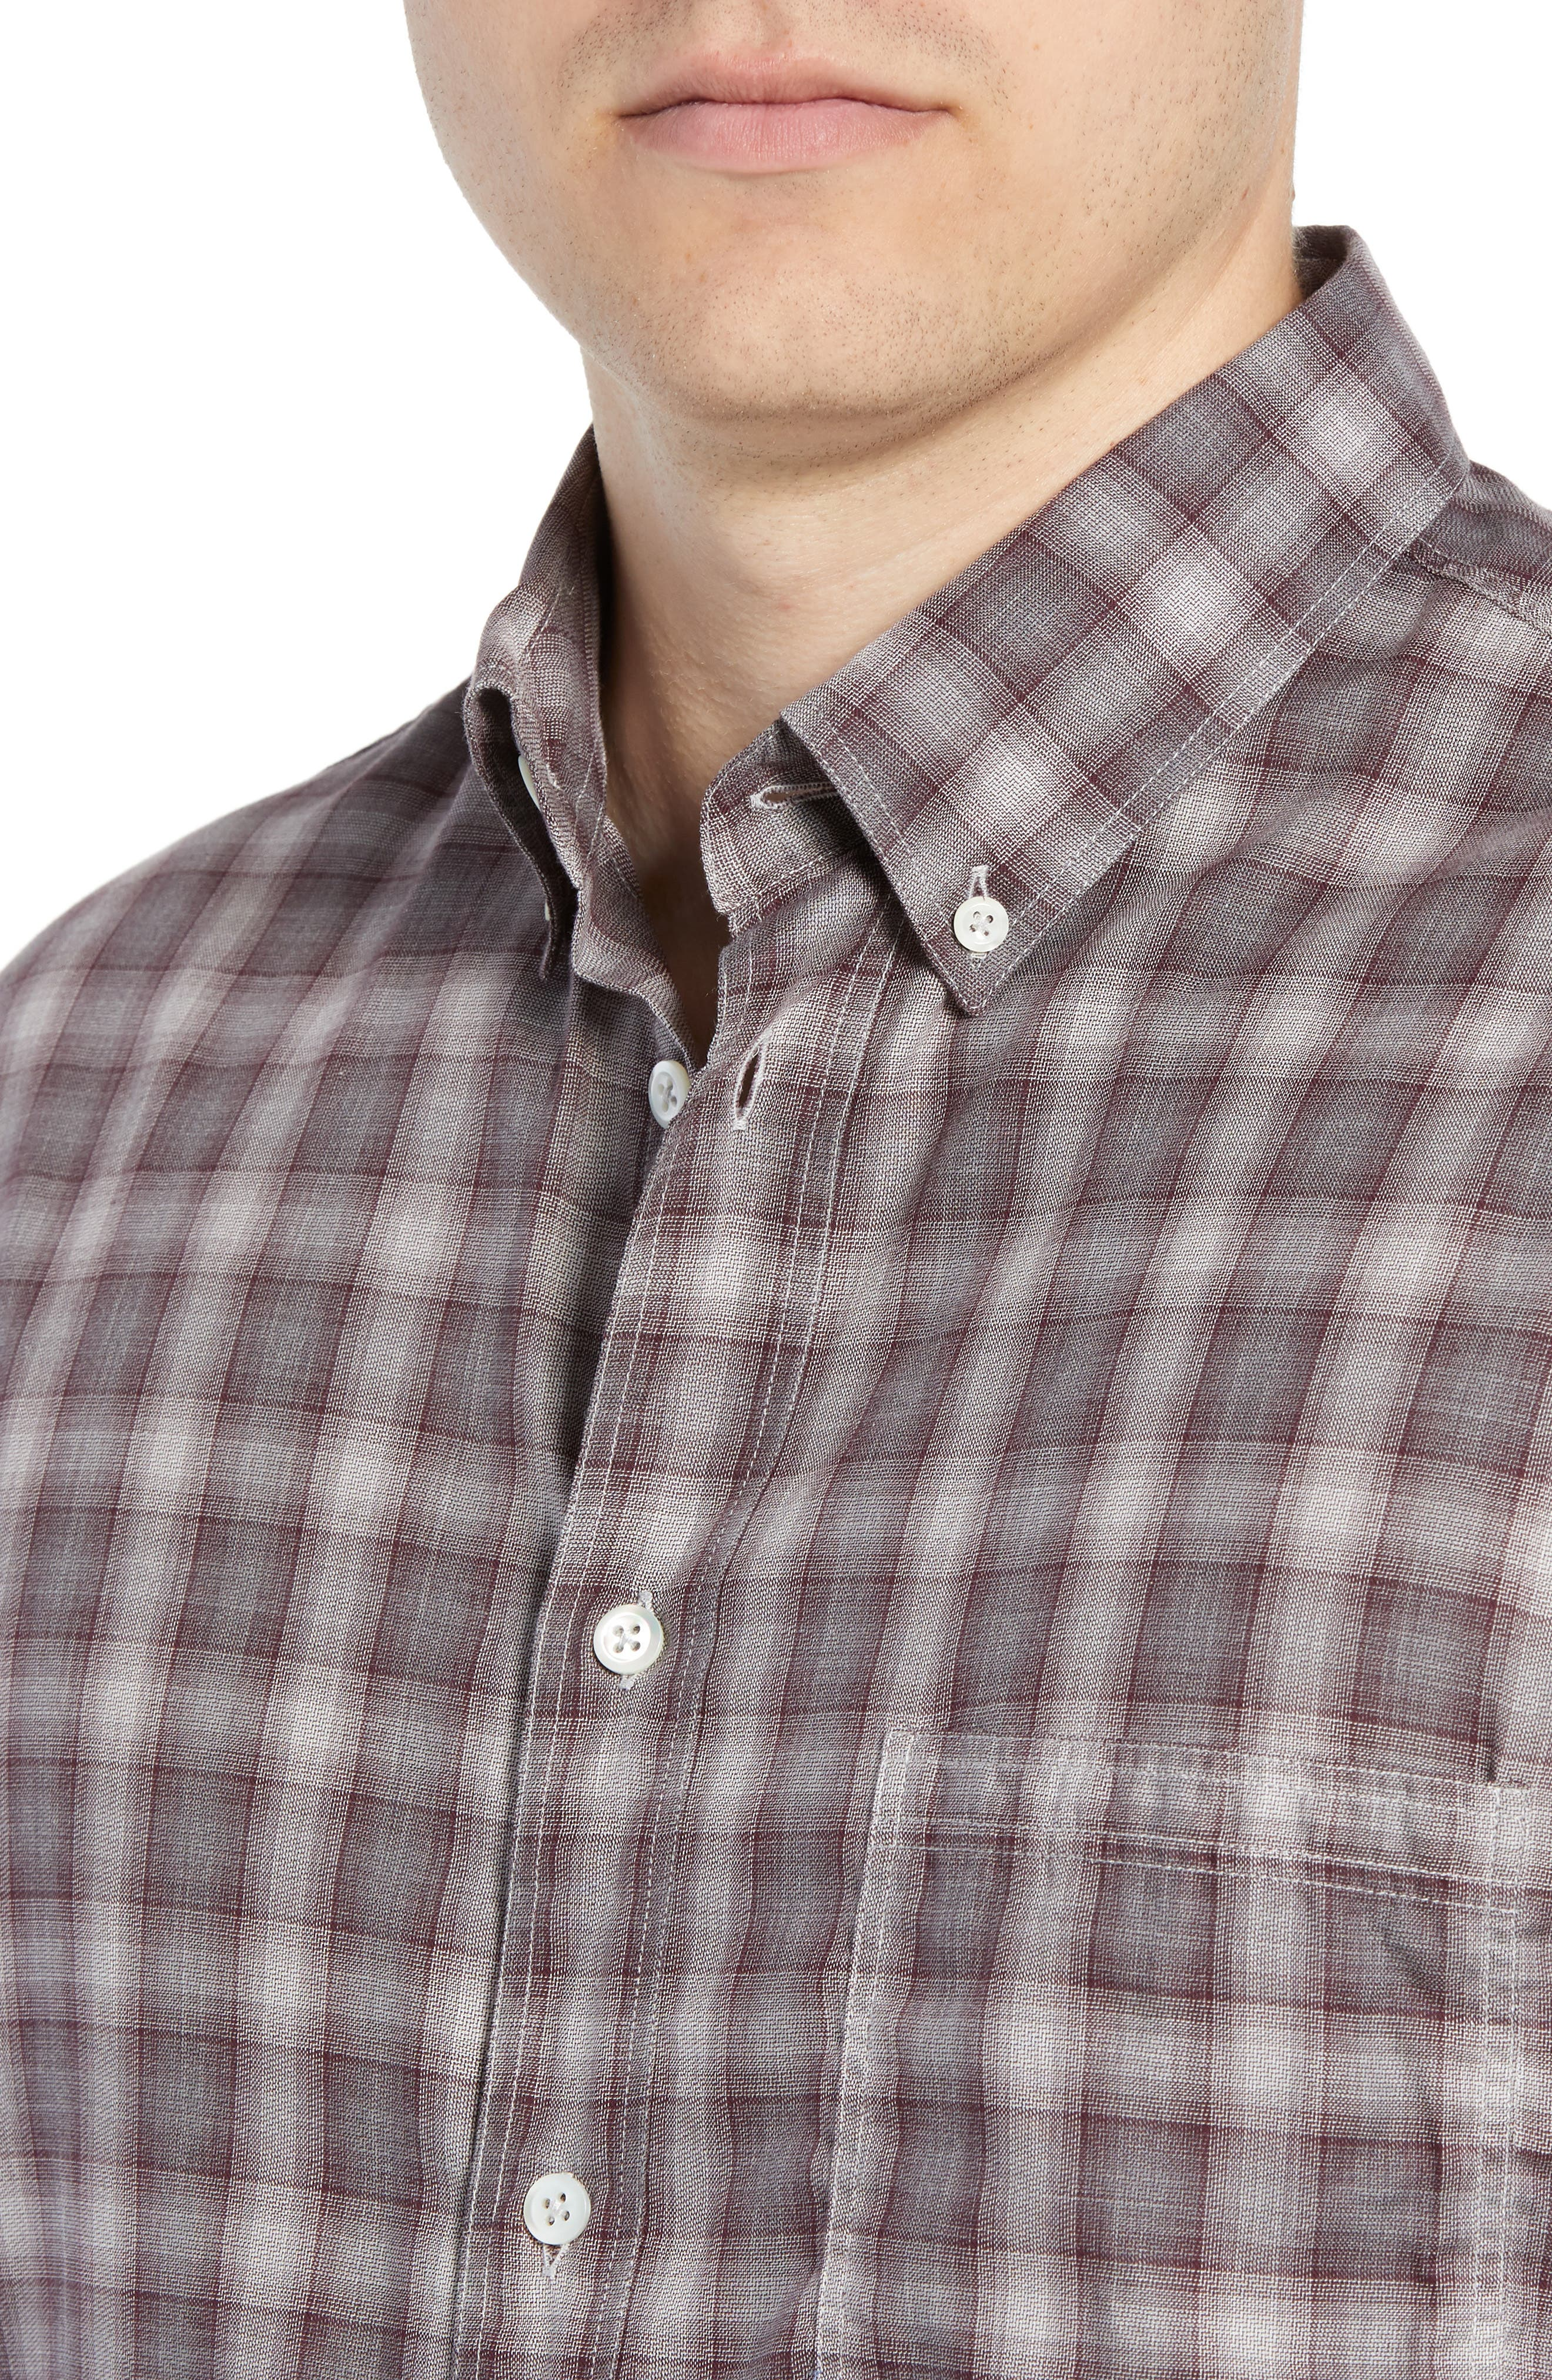 Tuscumbia Regular Fit Plaid Sport Shirt,                             Alternate thumbnail 2, color,                             930